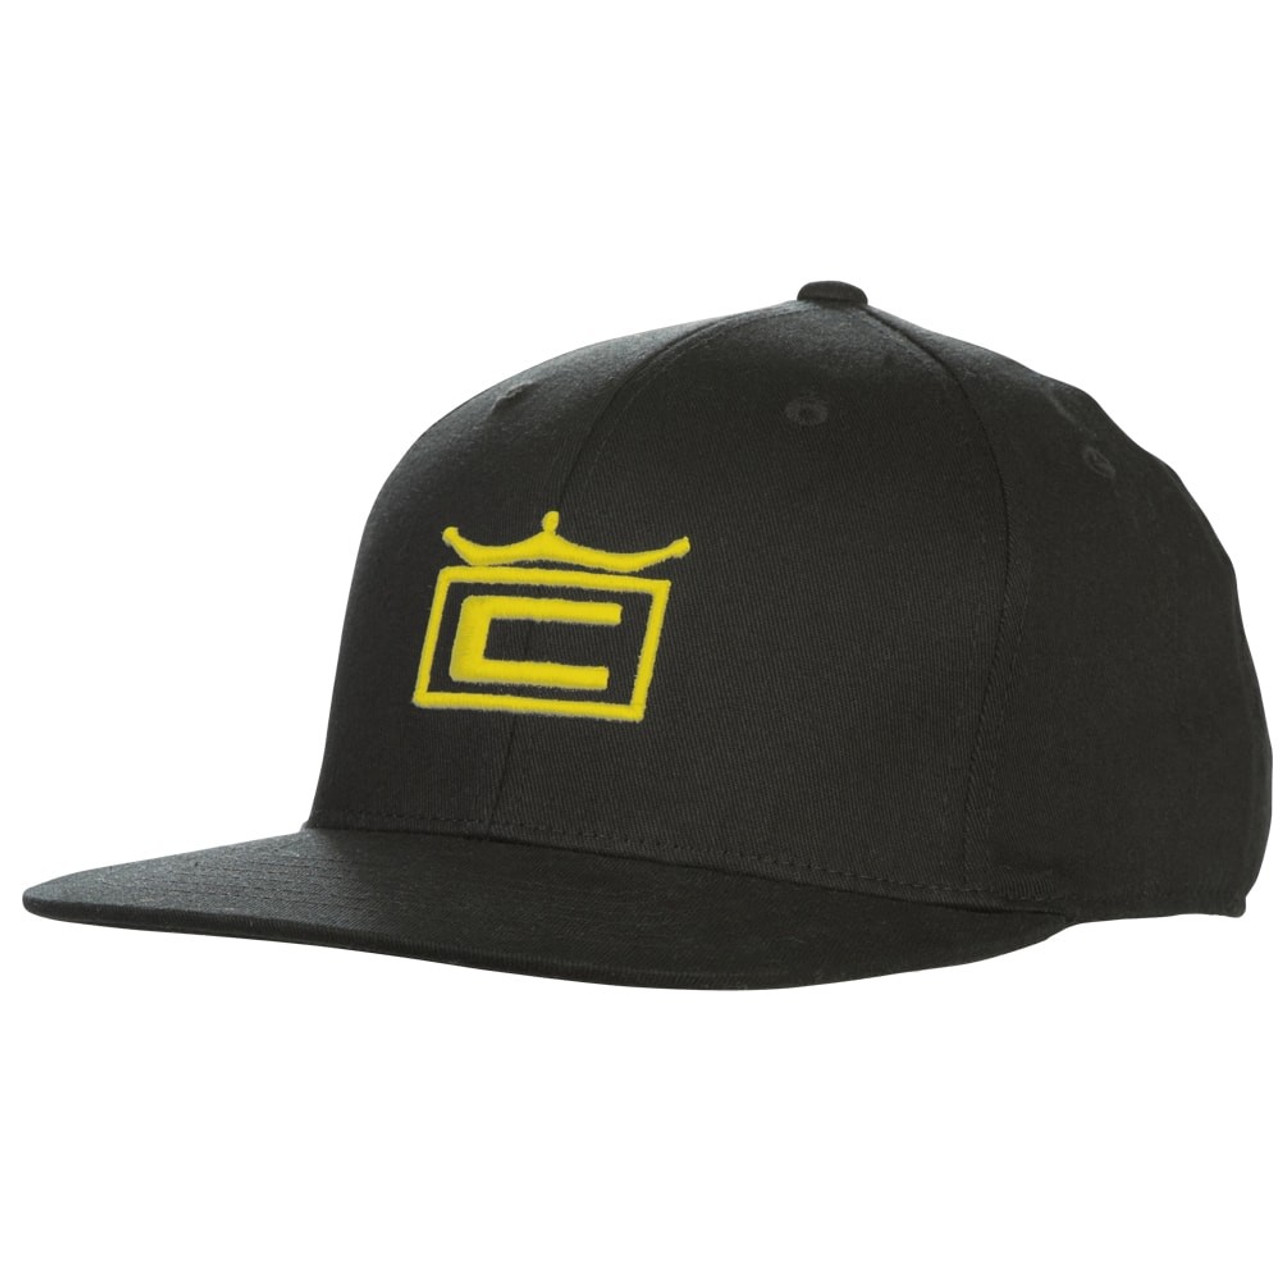 Cobra Tour Crown Snapback Cap - Black / Yellow